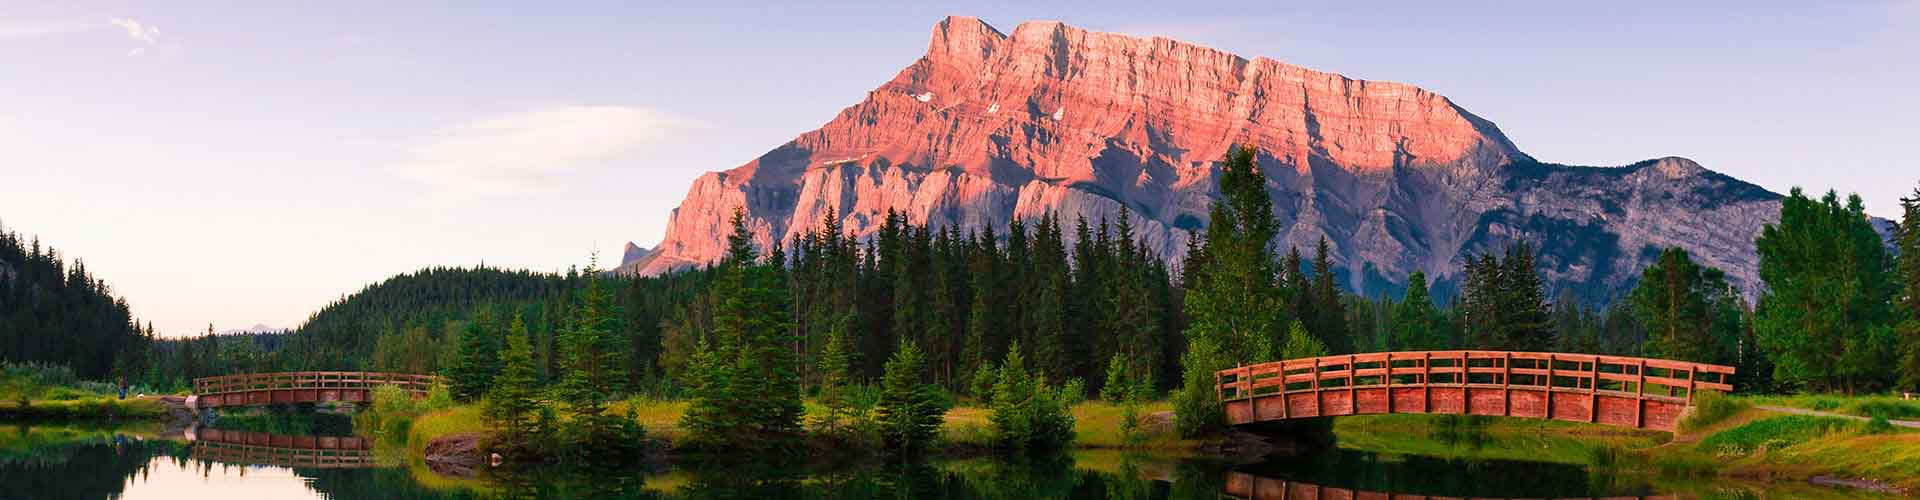 Banff – Hotels in Banff. Maps of Banff, Photos and Reviews for each Hotel in Banff.